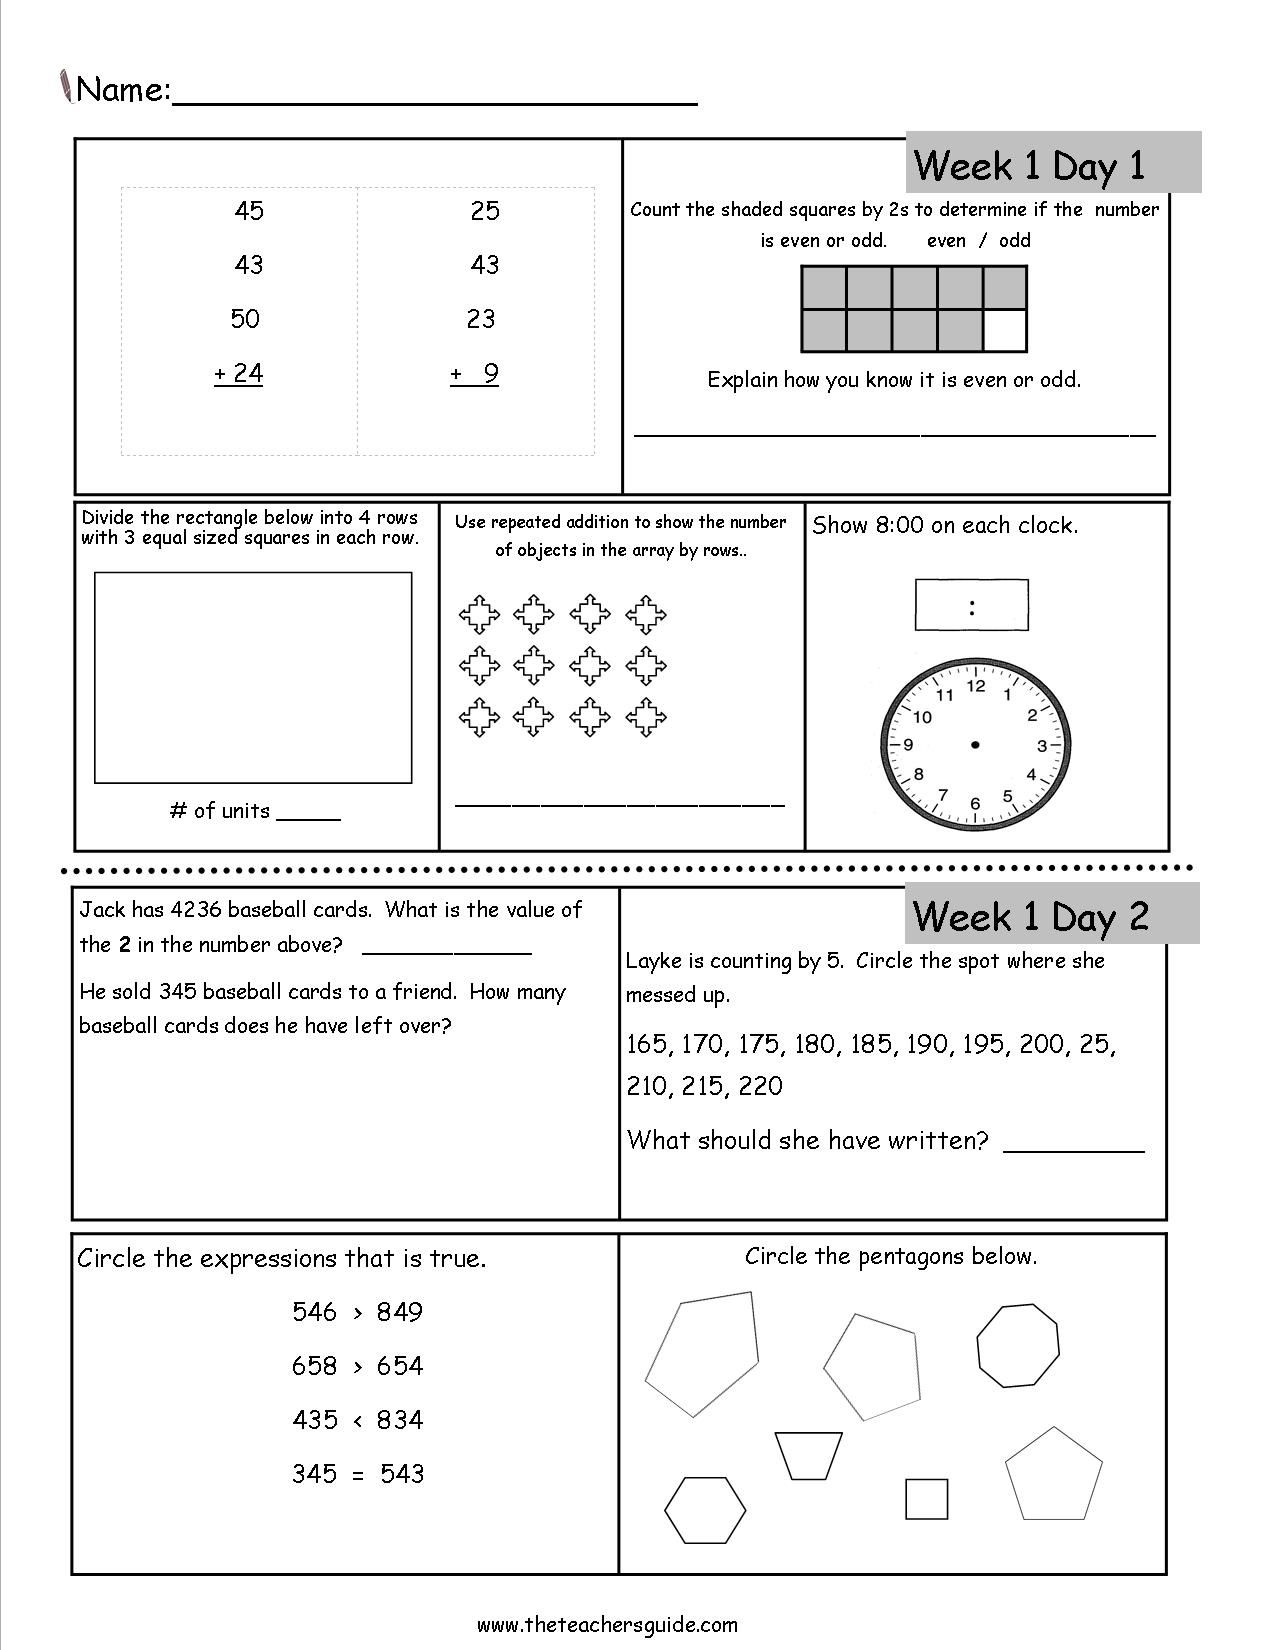 43 Simple Math Worksheets Design Ideas With Images